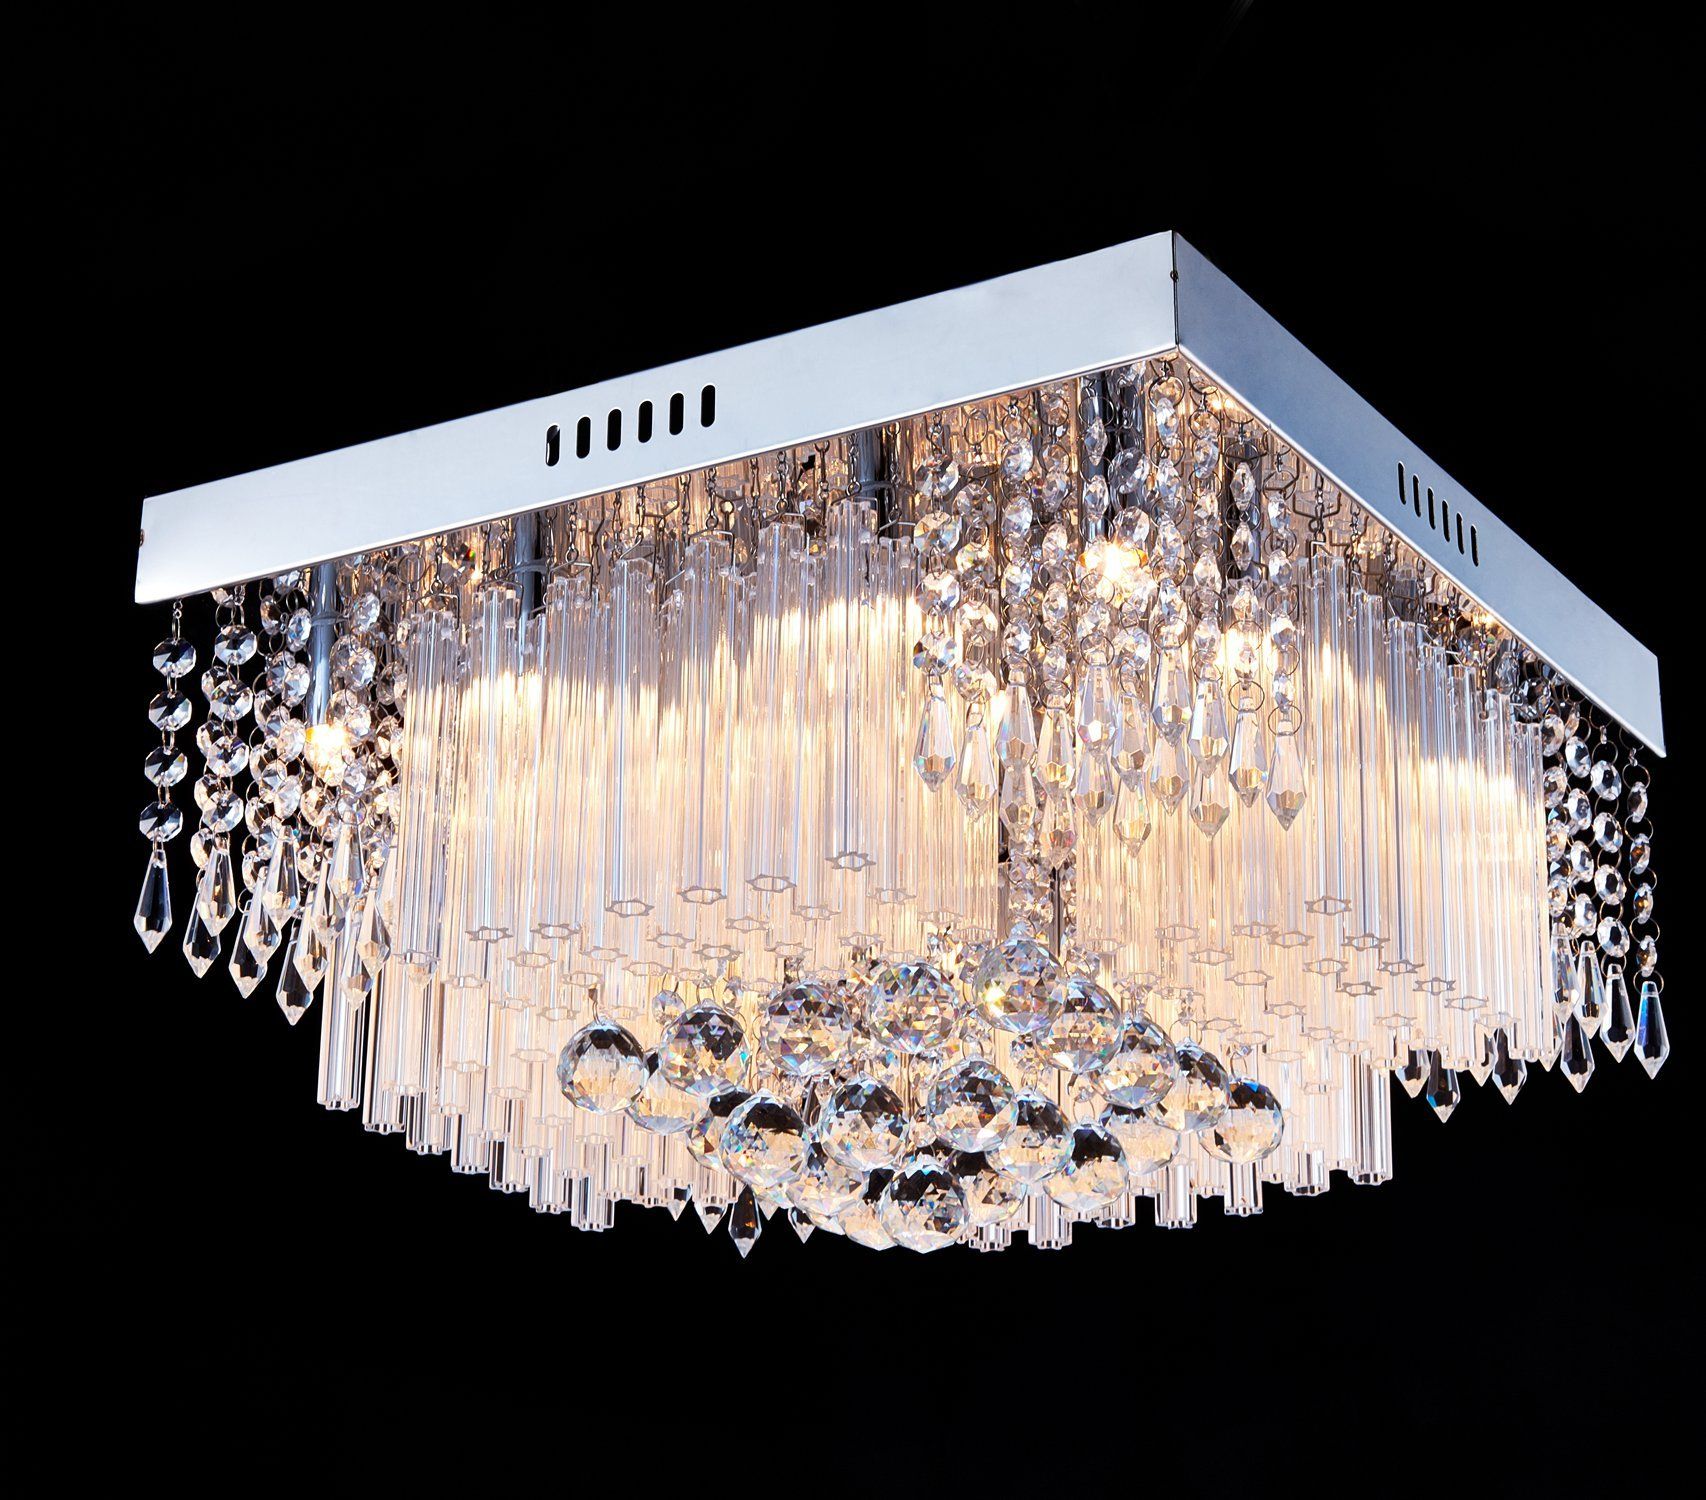 Saint Mossi Chandelier Modern K9 Crystal Raindrop Chandelier Lighting Flush mount LED Ceiling Light Fixture Pendant Lamp for Dining Room Bathroom Bedroom Livingroom 12G9 Bulbs Required H10 X W16 X L16 by Saint Mossi